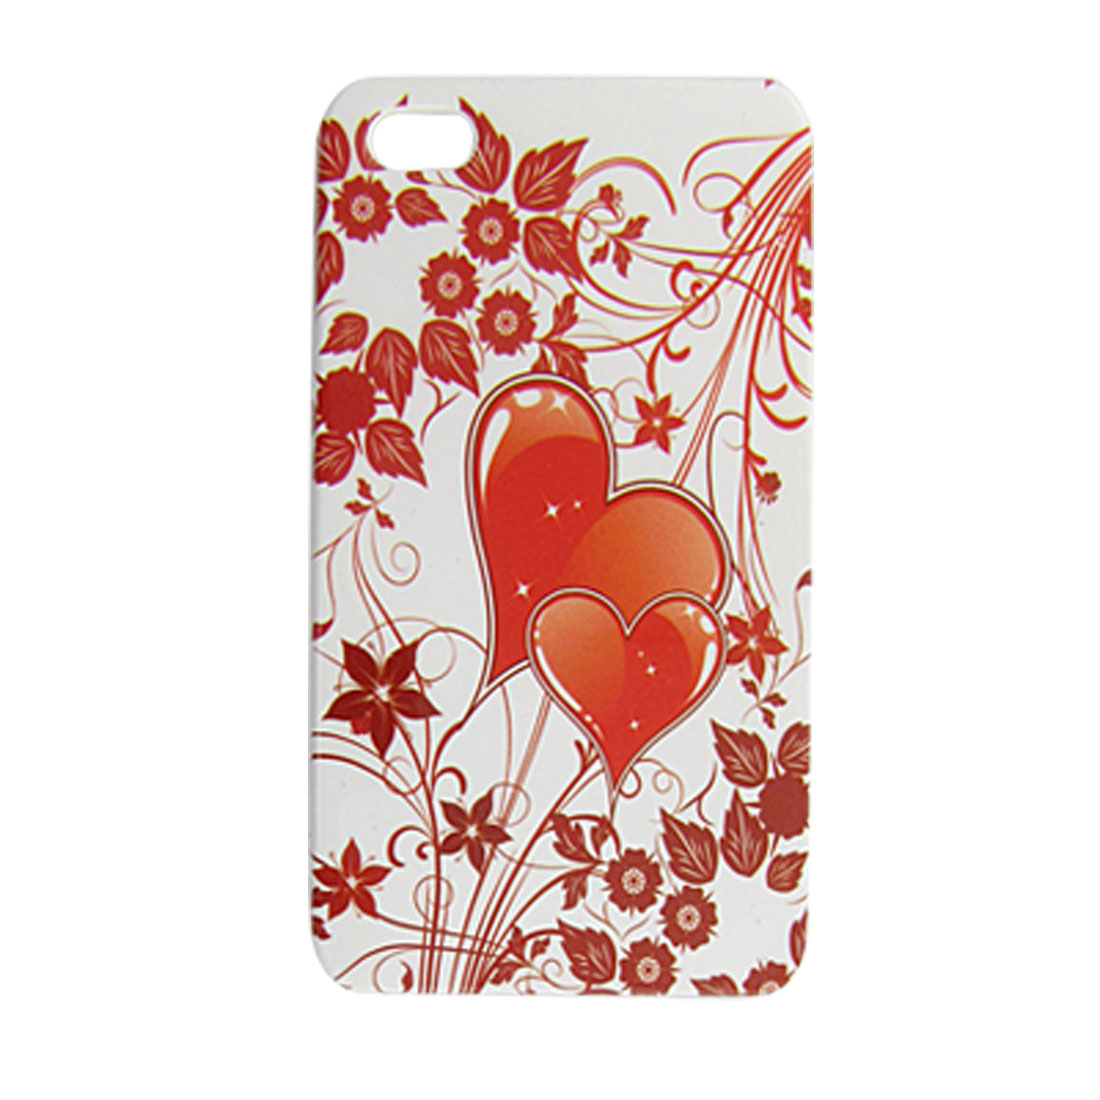 Red Double Heart Hard Plastic Back Case for iPhone 4 4G